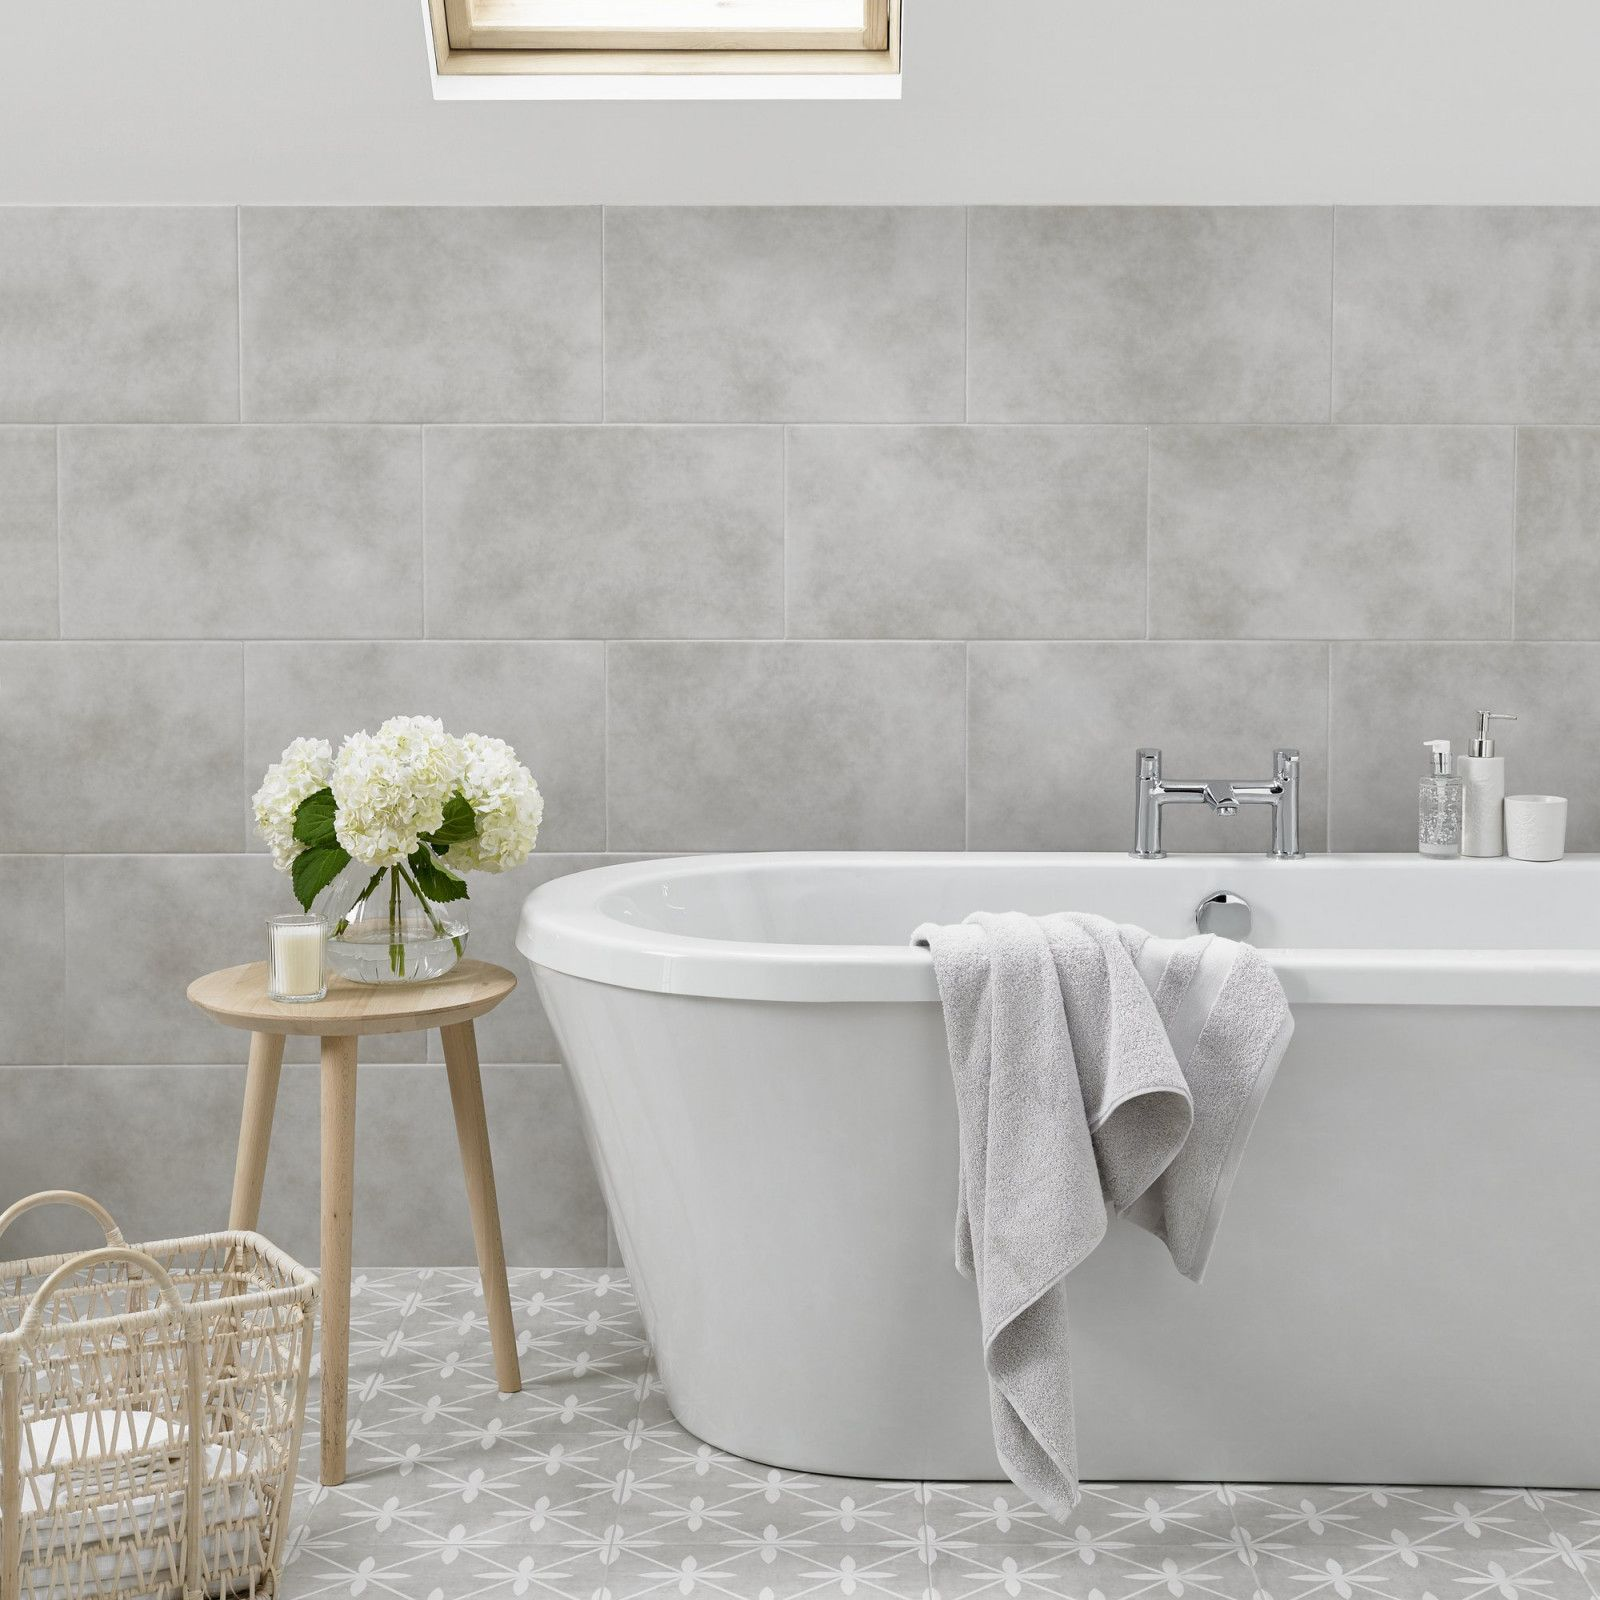 This square 331mm x 331mm feature floor tile is perfect for this square 331mm x 331mm feature floor tile is perfect for creating a distinctive look in dailygadgetfo Images